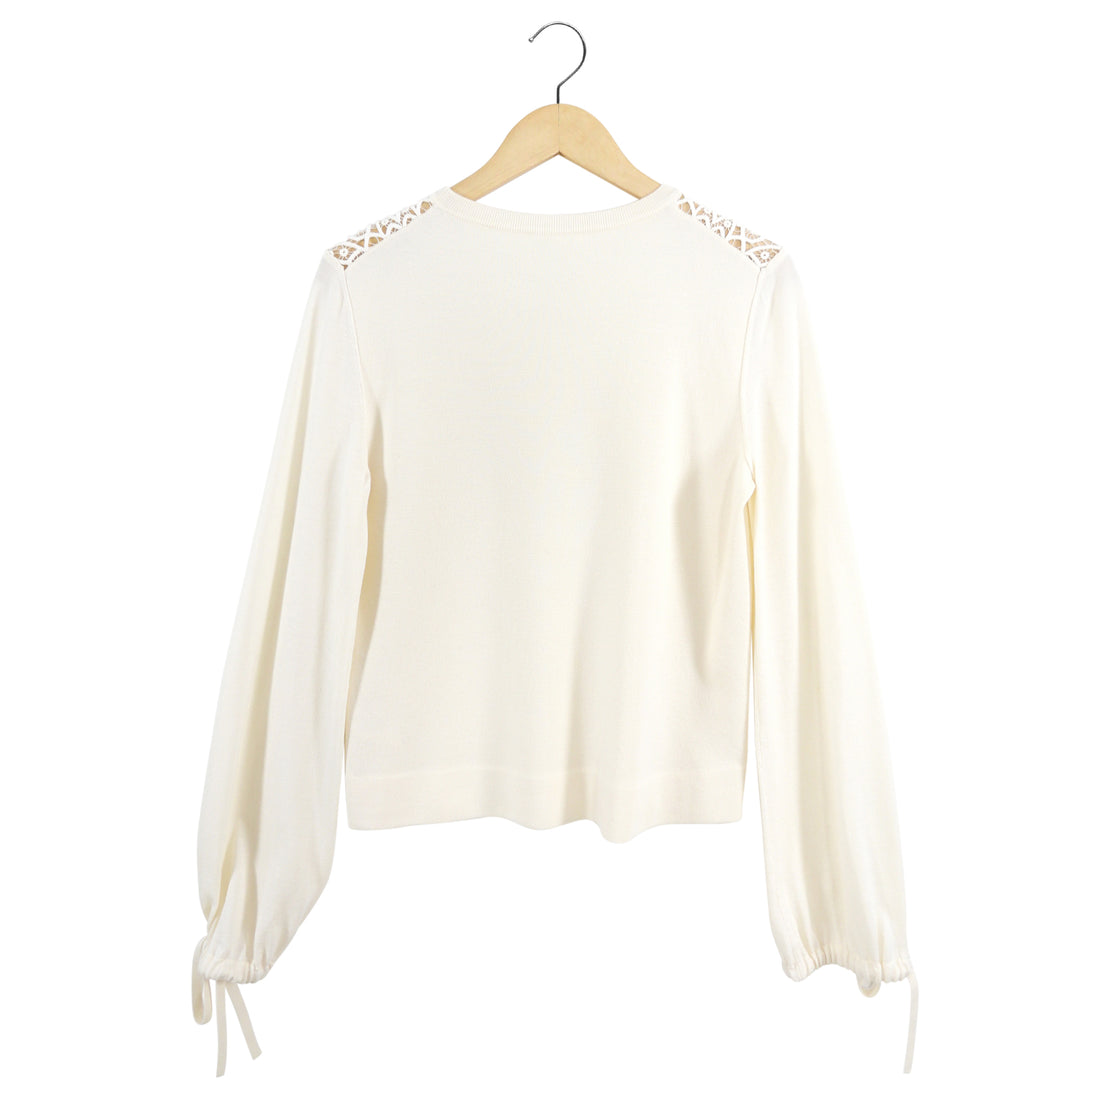 "Details: Cream knit jersey top with sheer broderie anglaise lace trim at shoulders and neckline, drawstring tie sleeves, straight cut body. Closures: pullover Marked size: L (fits USA 8).  Previous owner wears USA 8 Chest: 40 Shoulder seams: 16"" Sleeve: 28"" Back neck to hem: 23.5"" Material: 70 wool, 30 silk.  Lace:  80 cotton, 20 poly Condition: Excellent pre-owned"